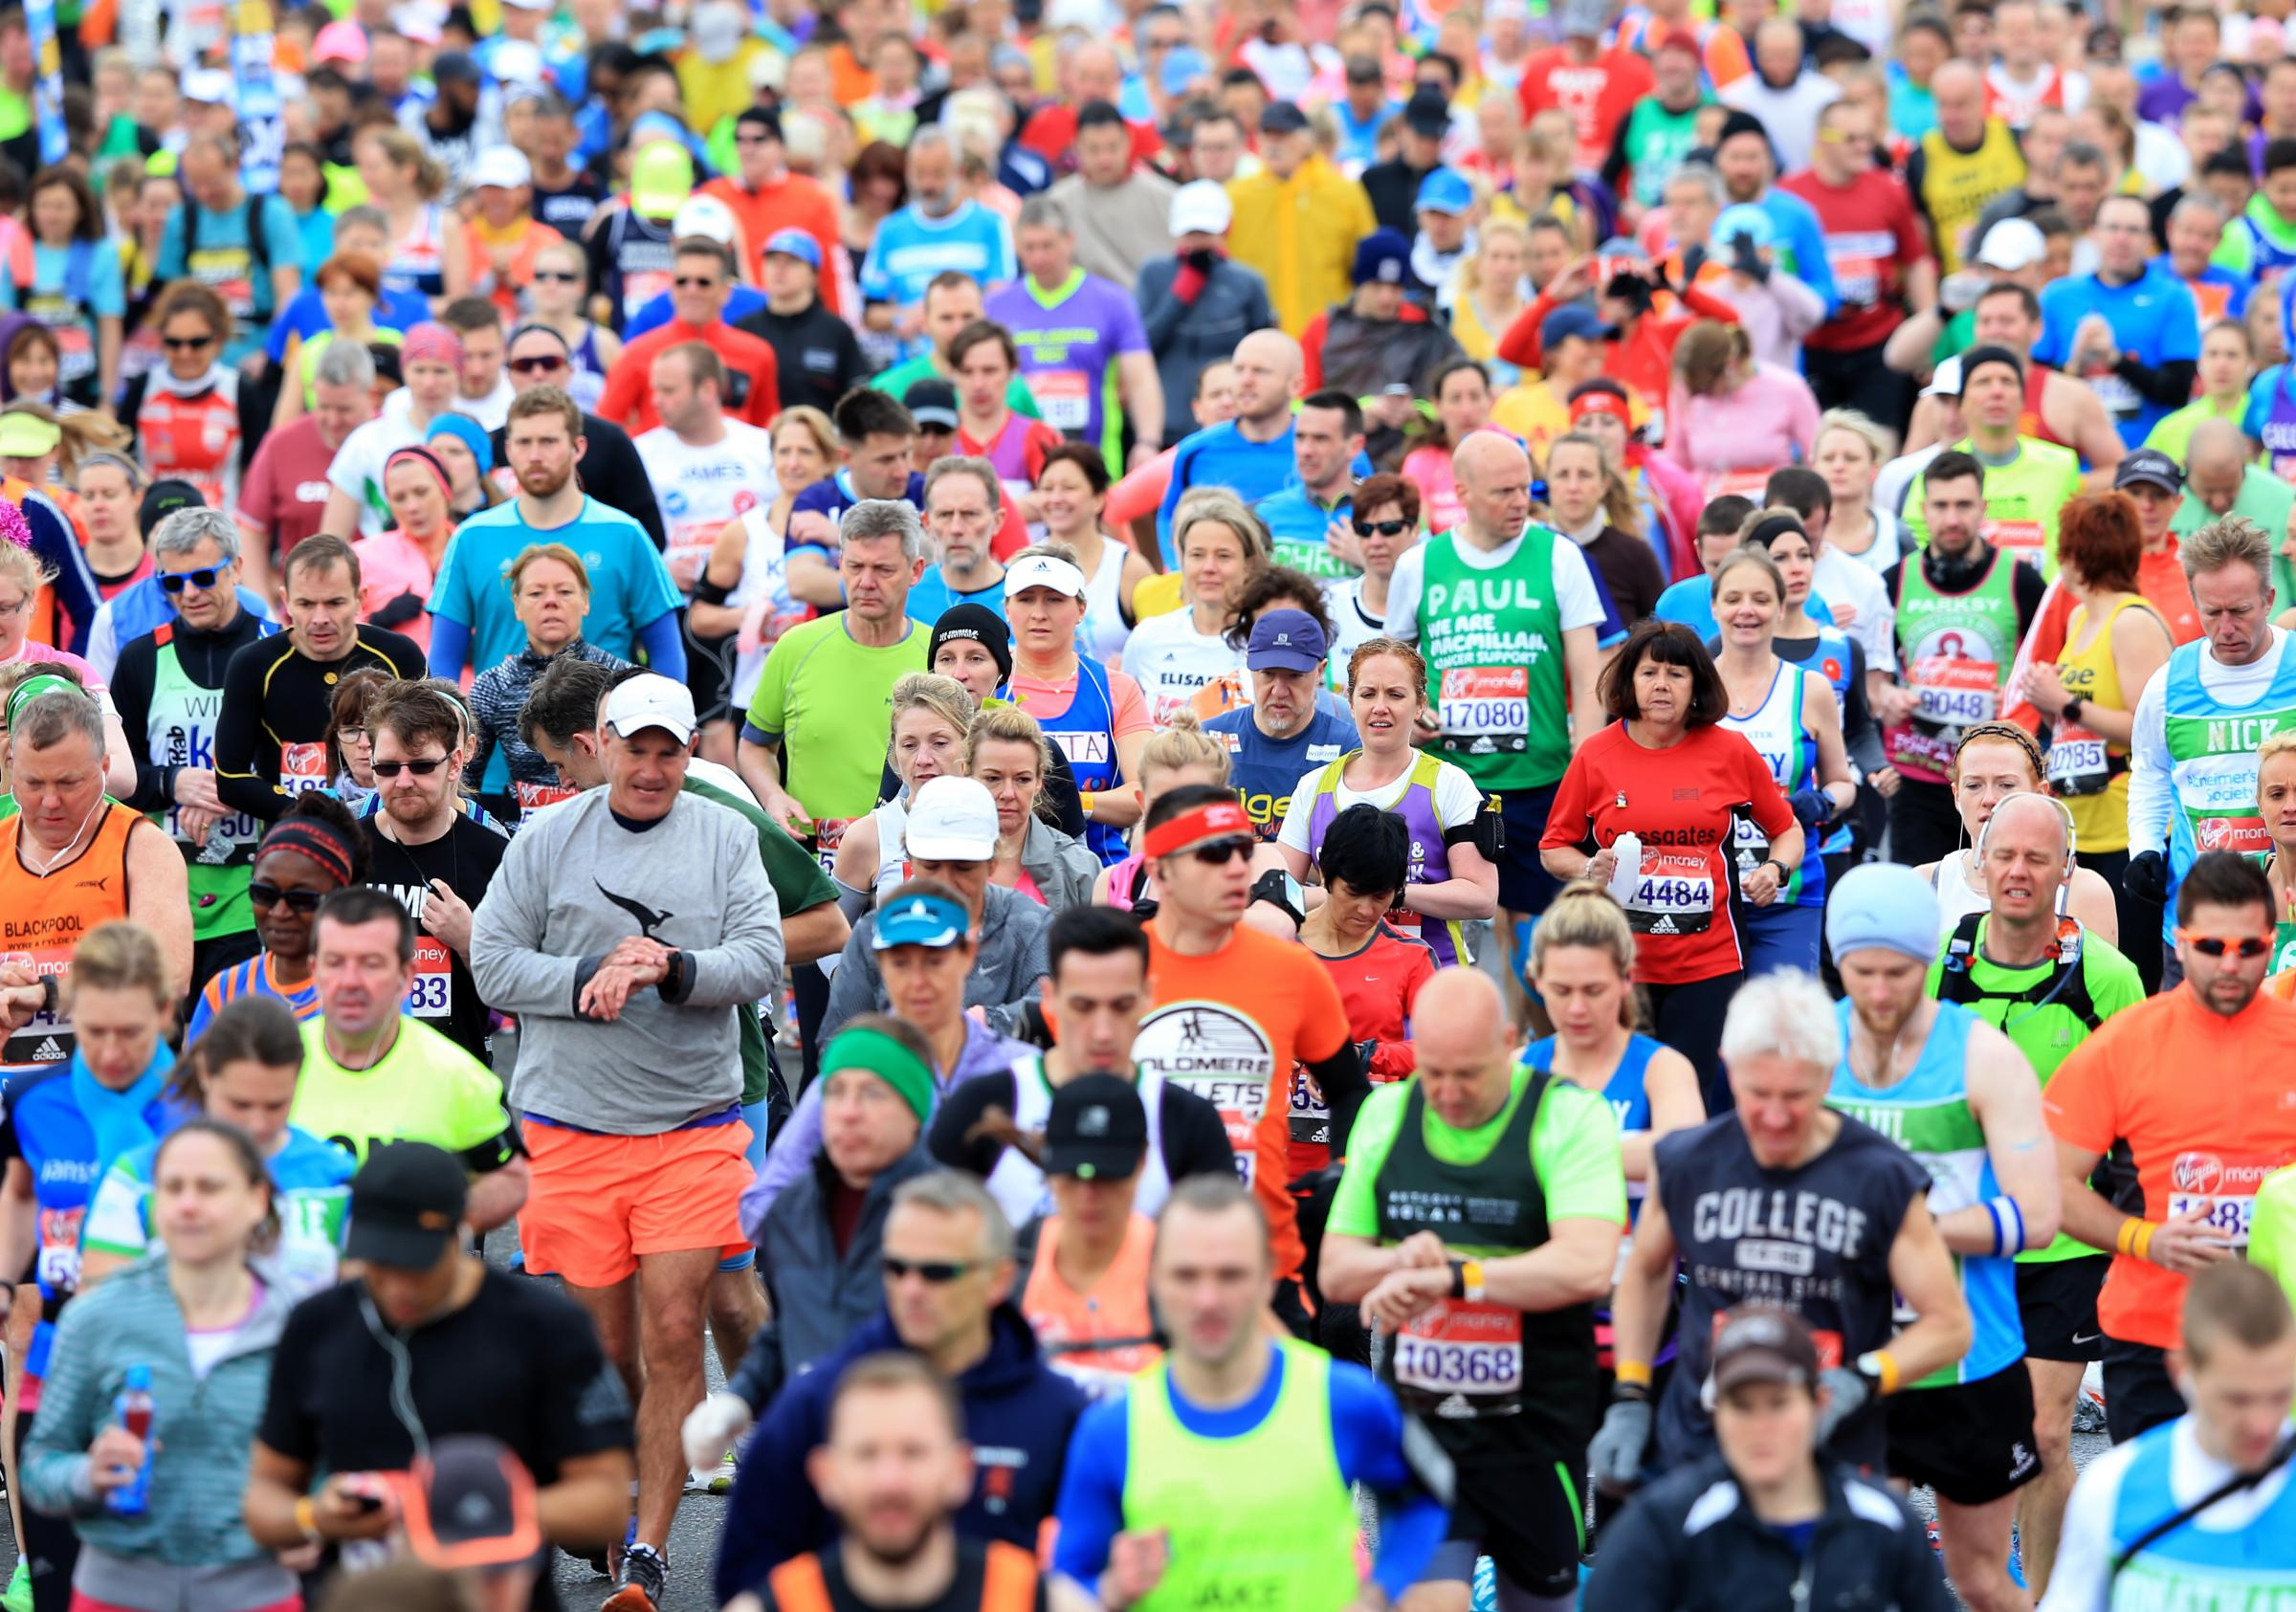 Runners make their way over the start line during the 2016 Virgin Money London Marathon..